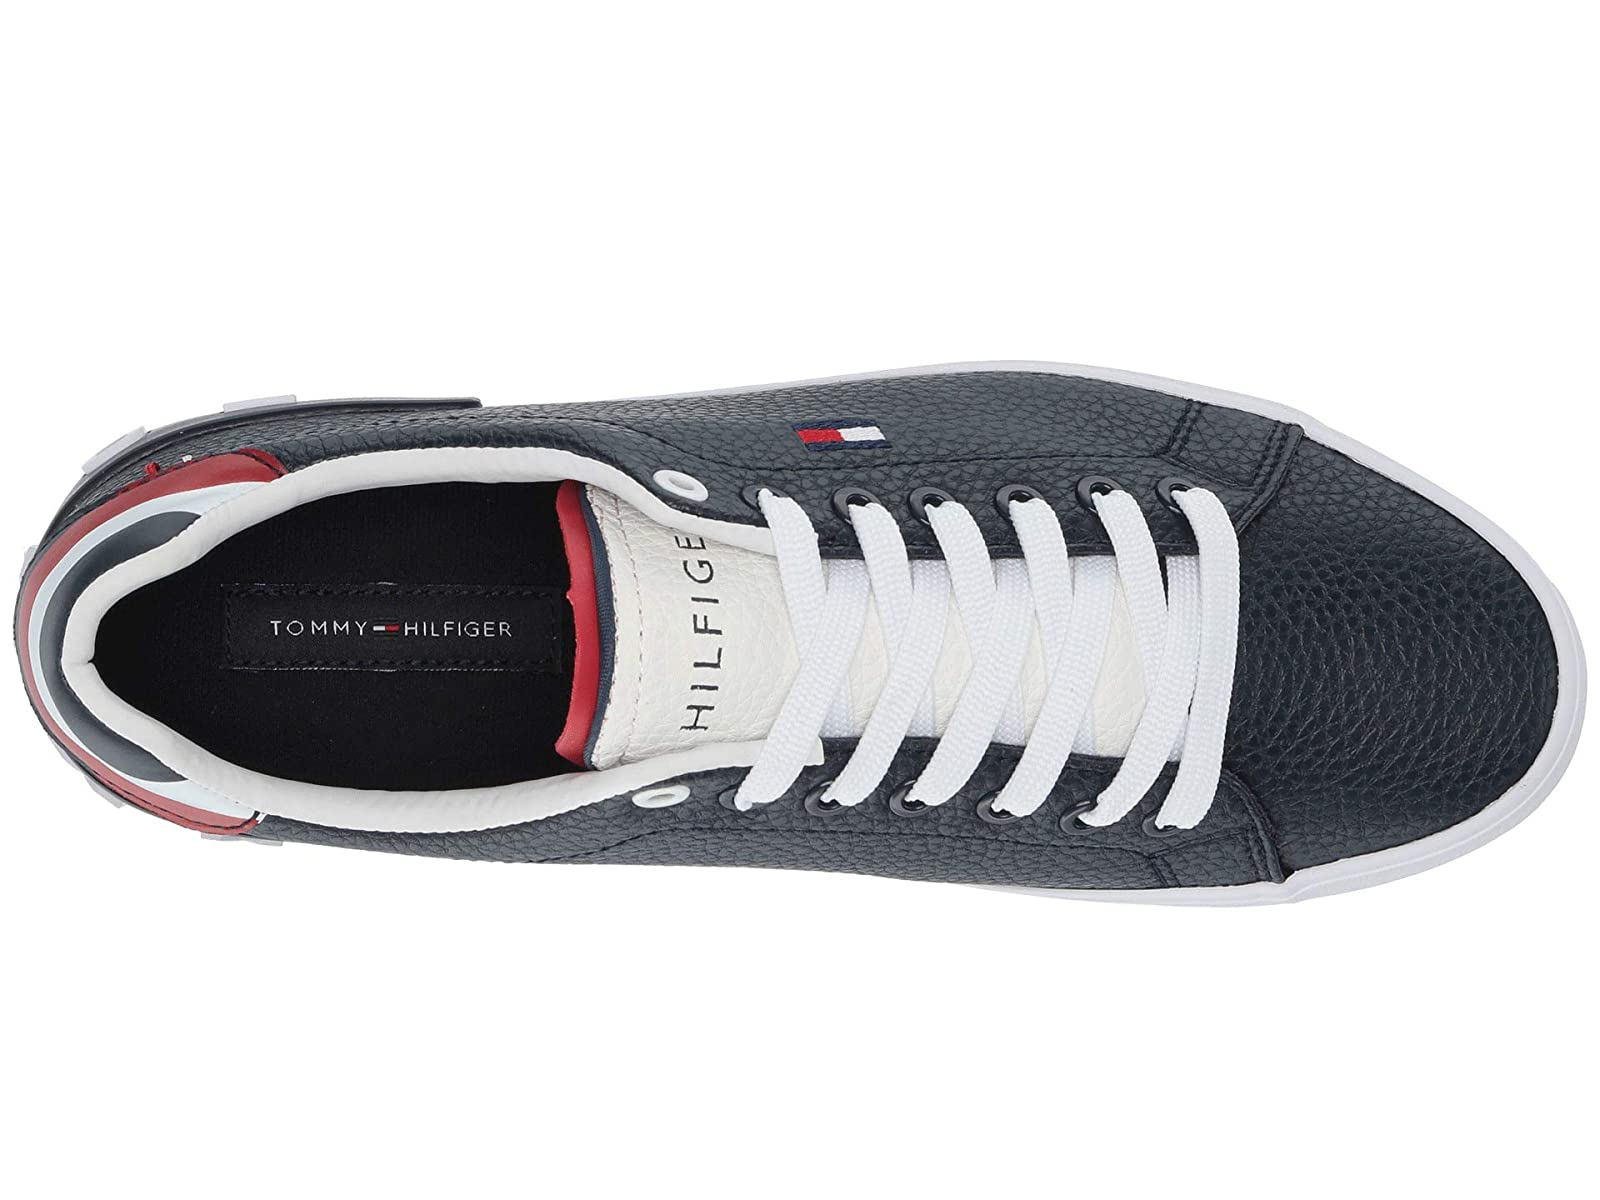 Man-039-s-Sneakers-amp-Athletic-Shoes-Tommy-Hilfiger-Rezz thumbnail 3